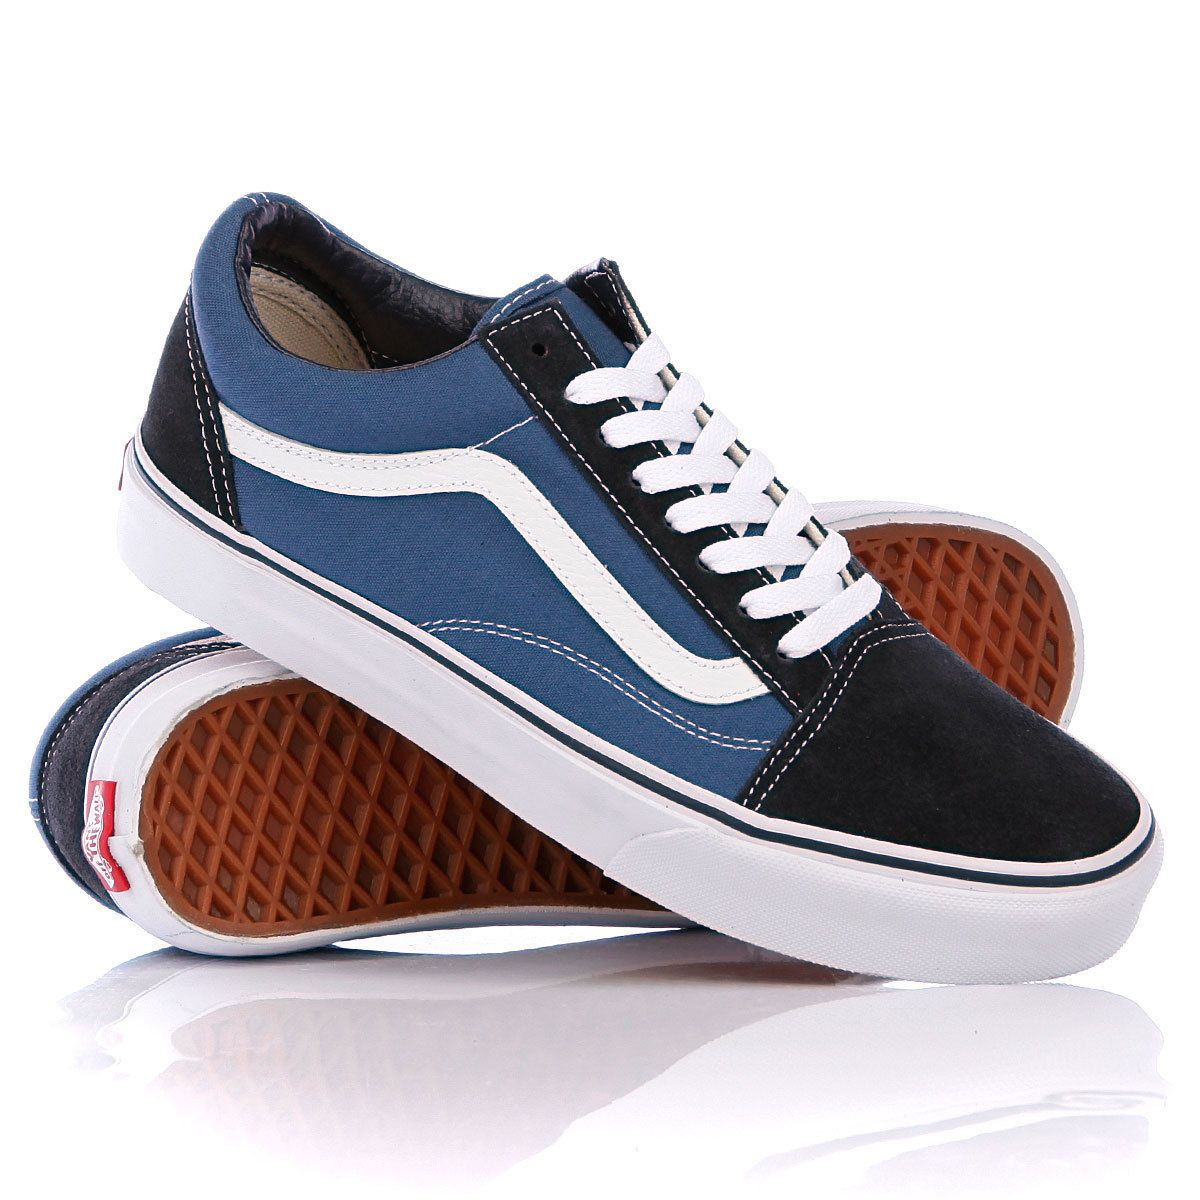 d3f4782c24 VANS Old Skool Lite Navy STV Navy White UltraCush Casual Classic MEN S 7.5